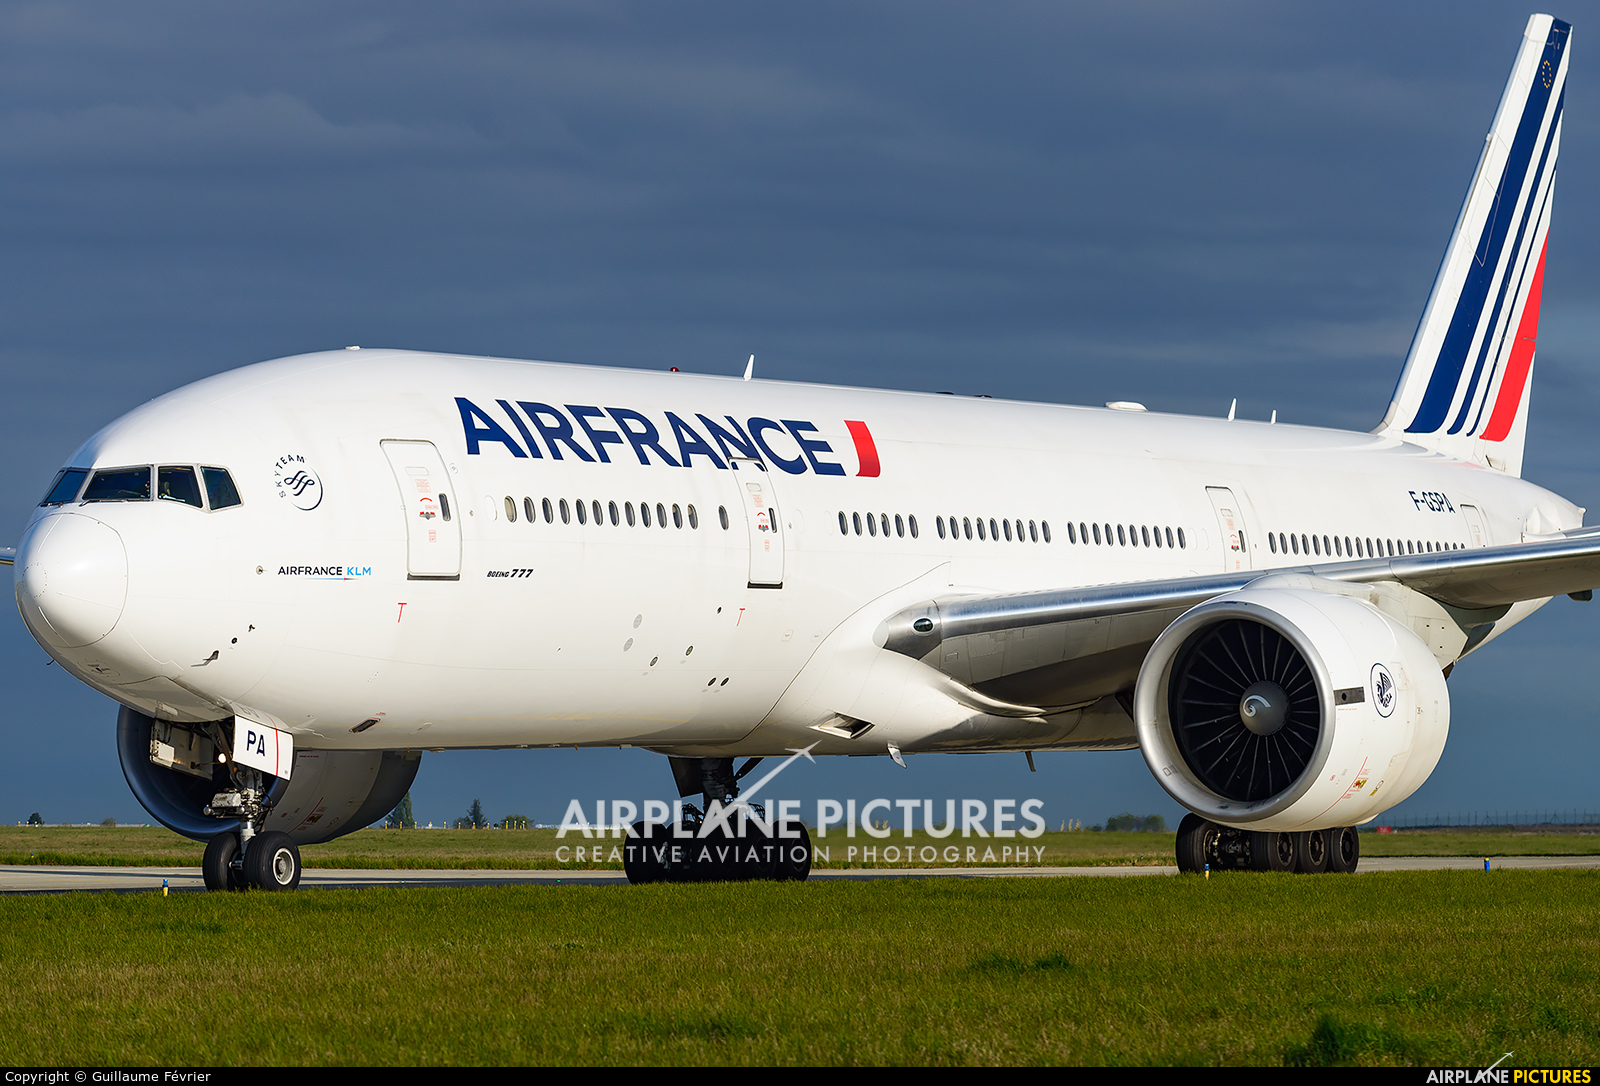 Air France F-GSPA aircraft at Paris - Charles de Gaulle